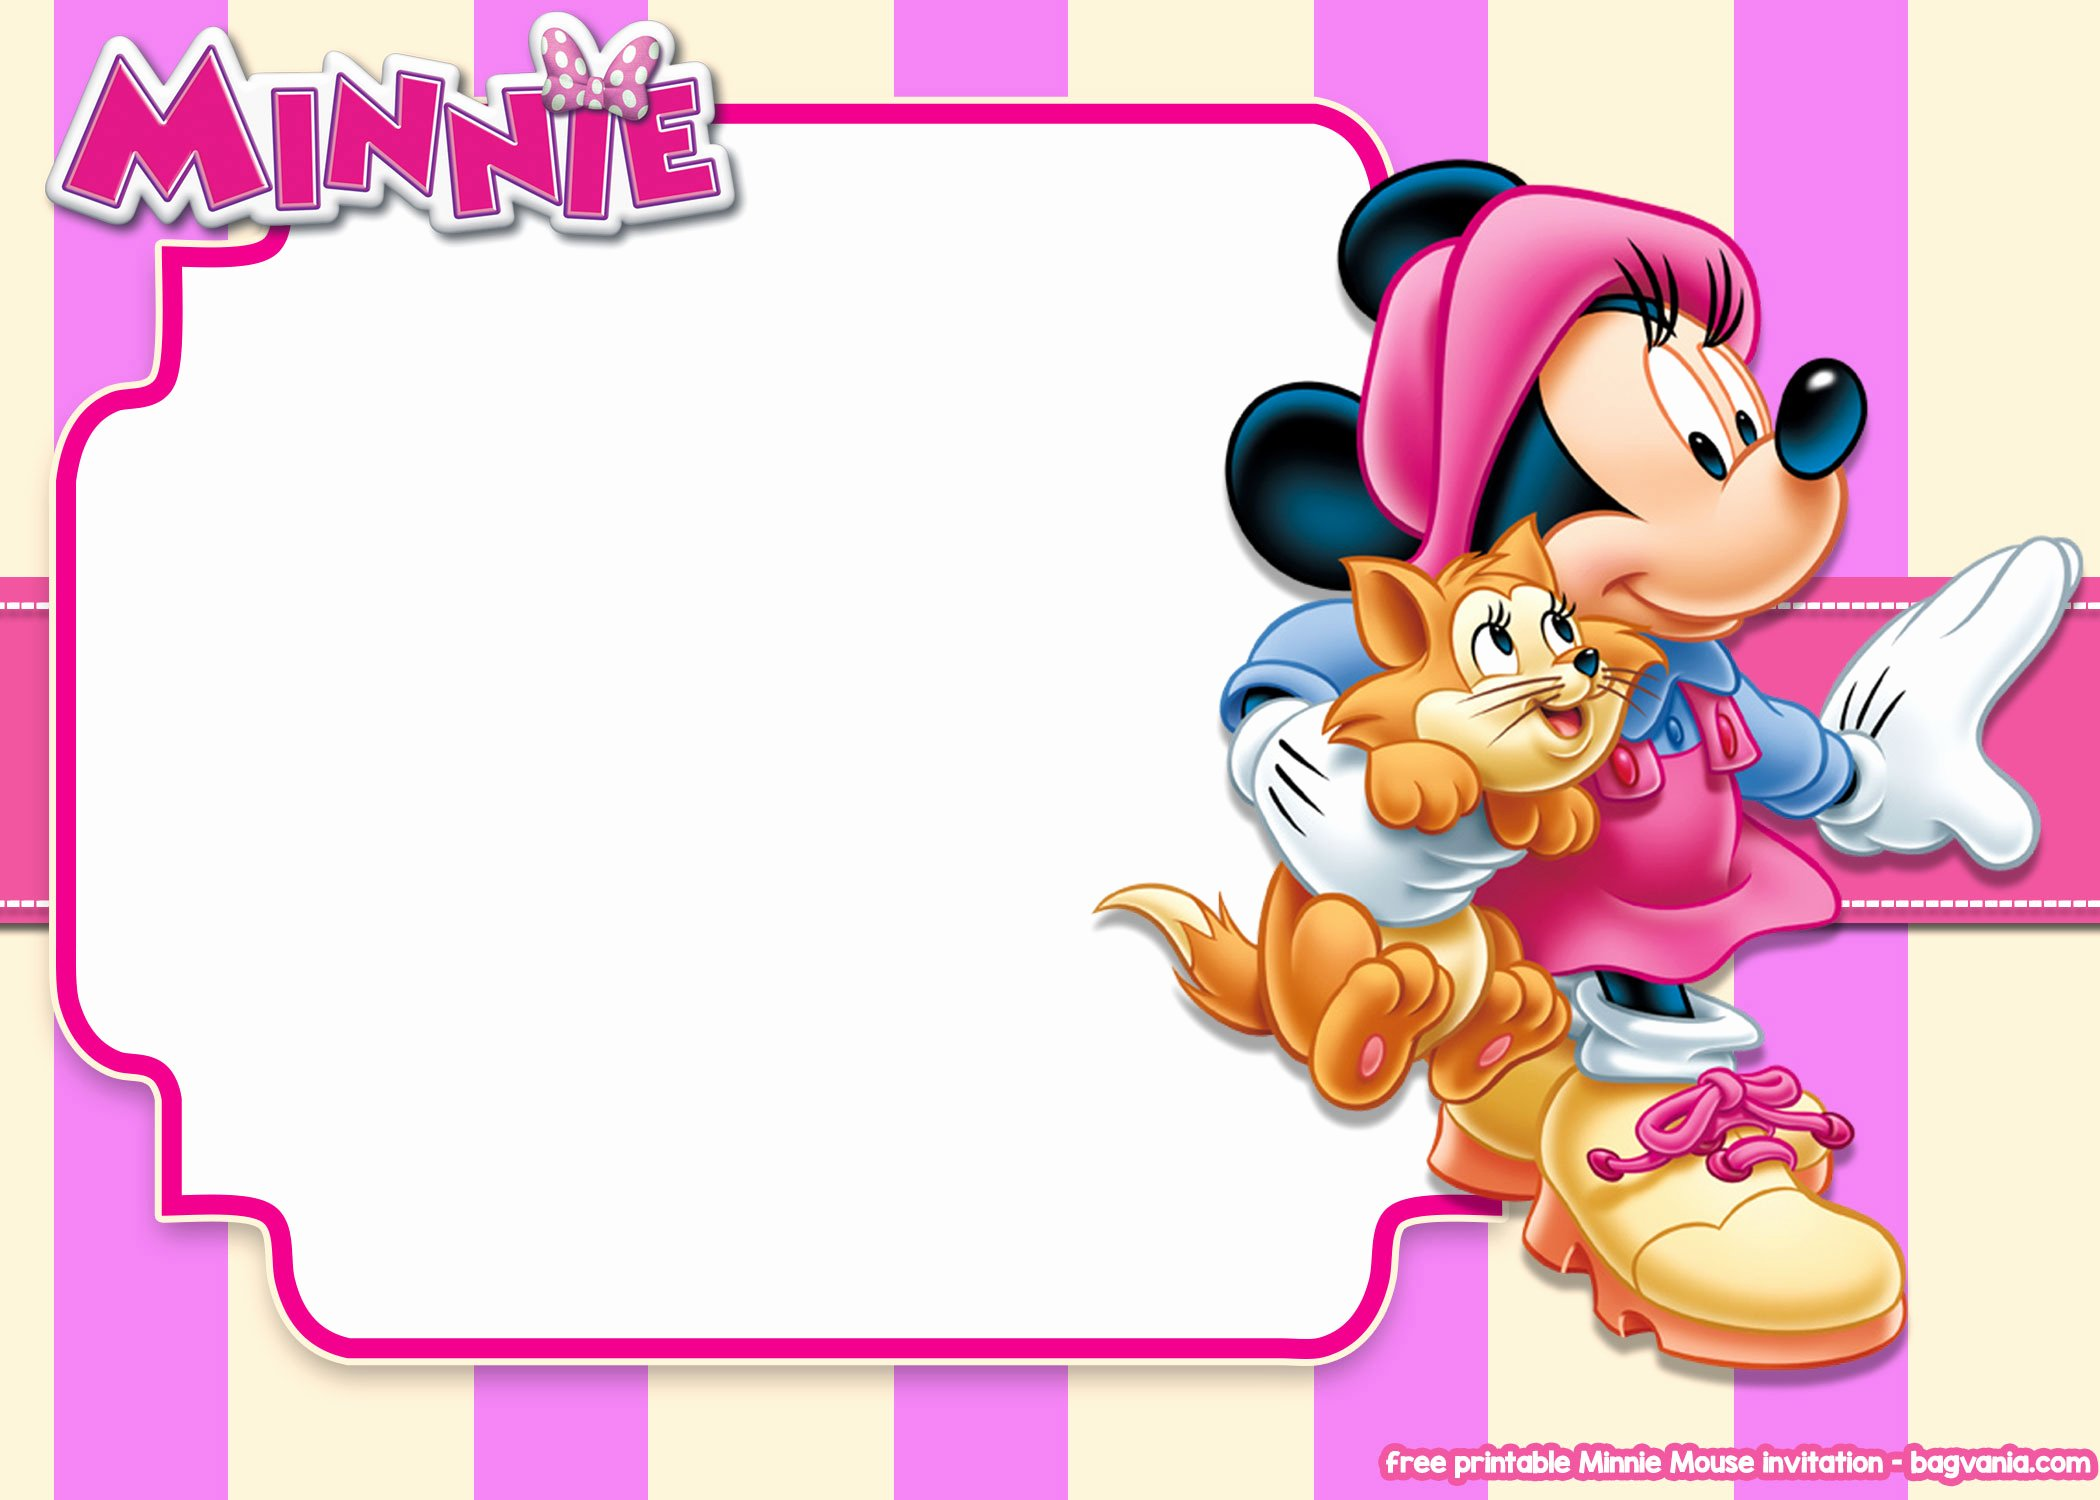 Minnie Mouse Blank Invitation Lovely Free Printable Minnie Mouse Pink Invitation Templates